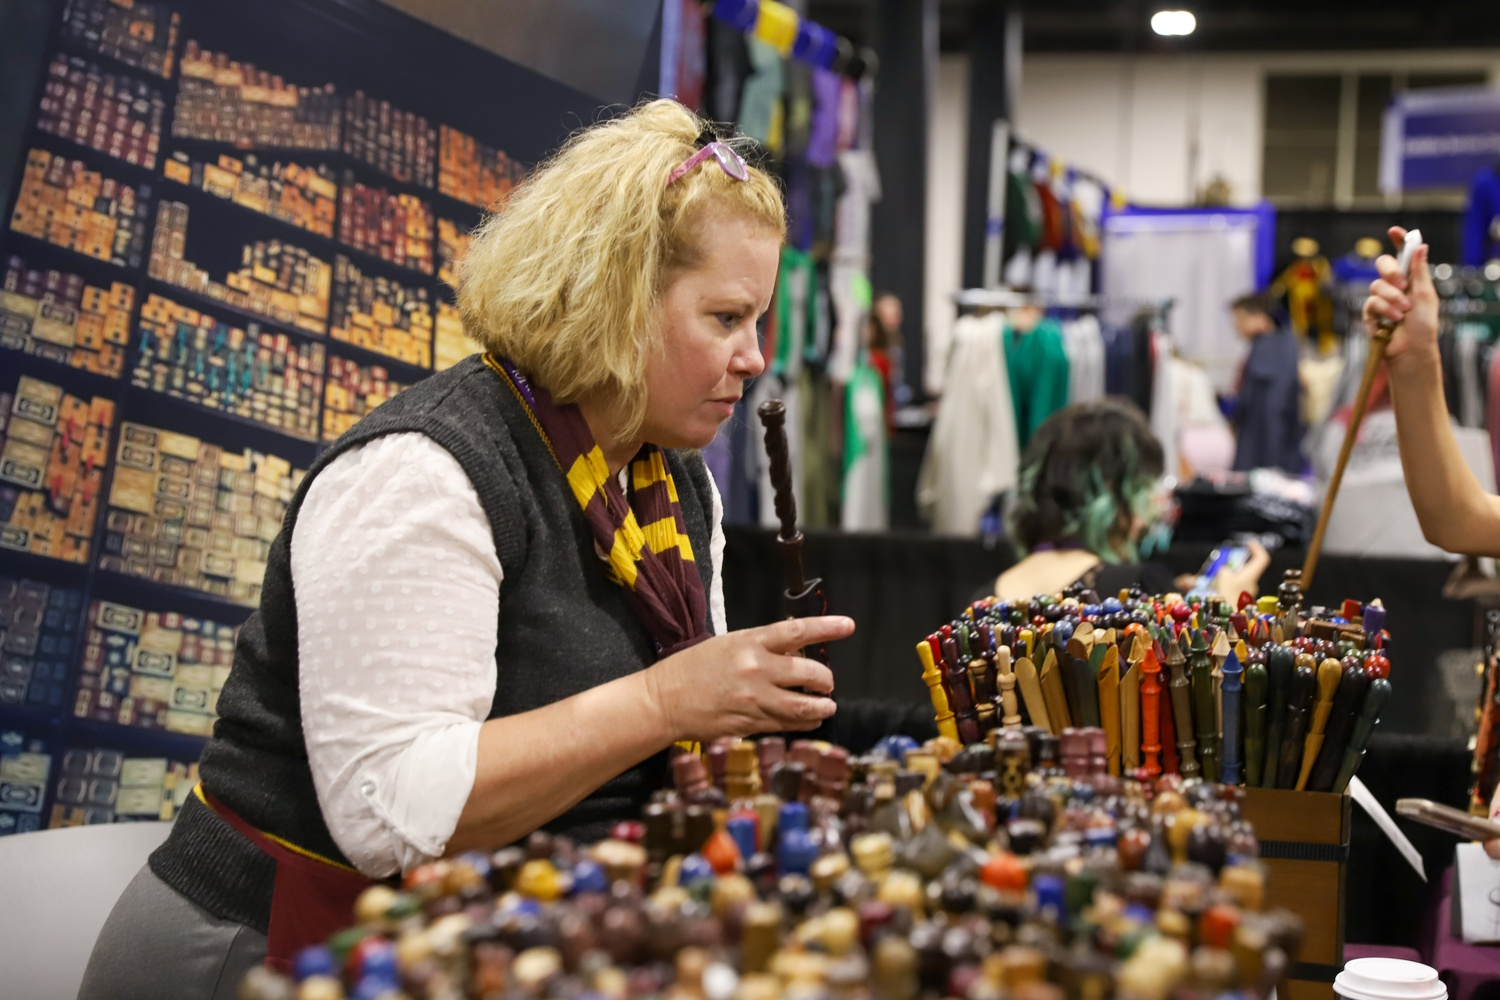 Lisa B. Laslo and her husband Greg E. Laslo opened the Hungarian Wand Shop after he carved a wand for his nephew. Their endeavour has taken them around the world selling hand-carved wands, currently attending their 9th LeakyCon.